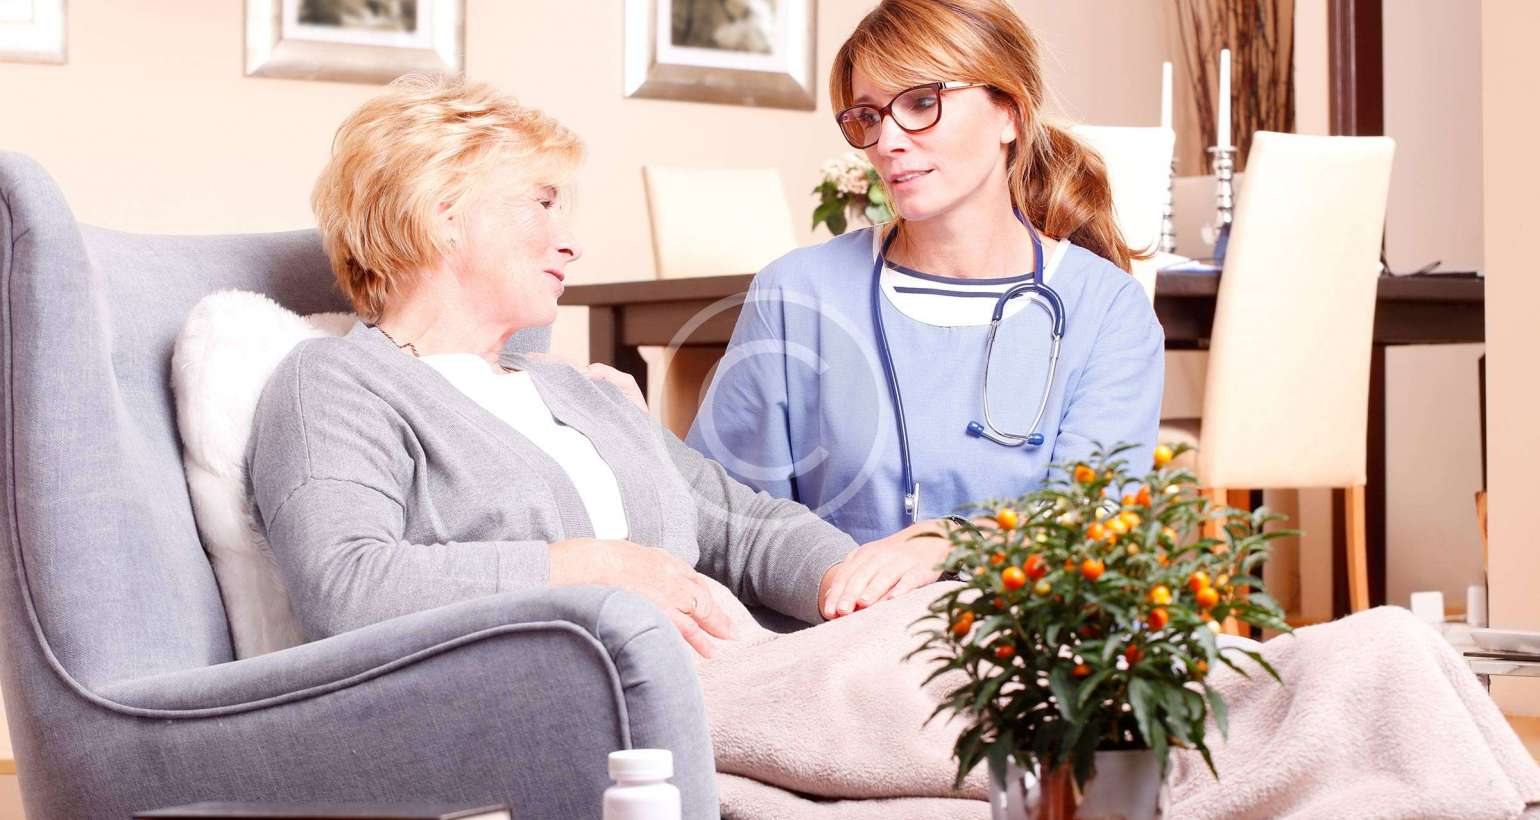 Top 5 Health Concerns for Seniors